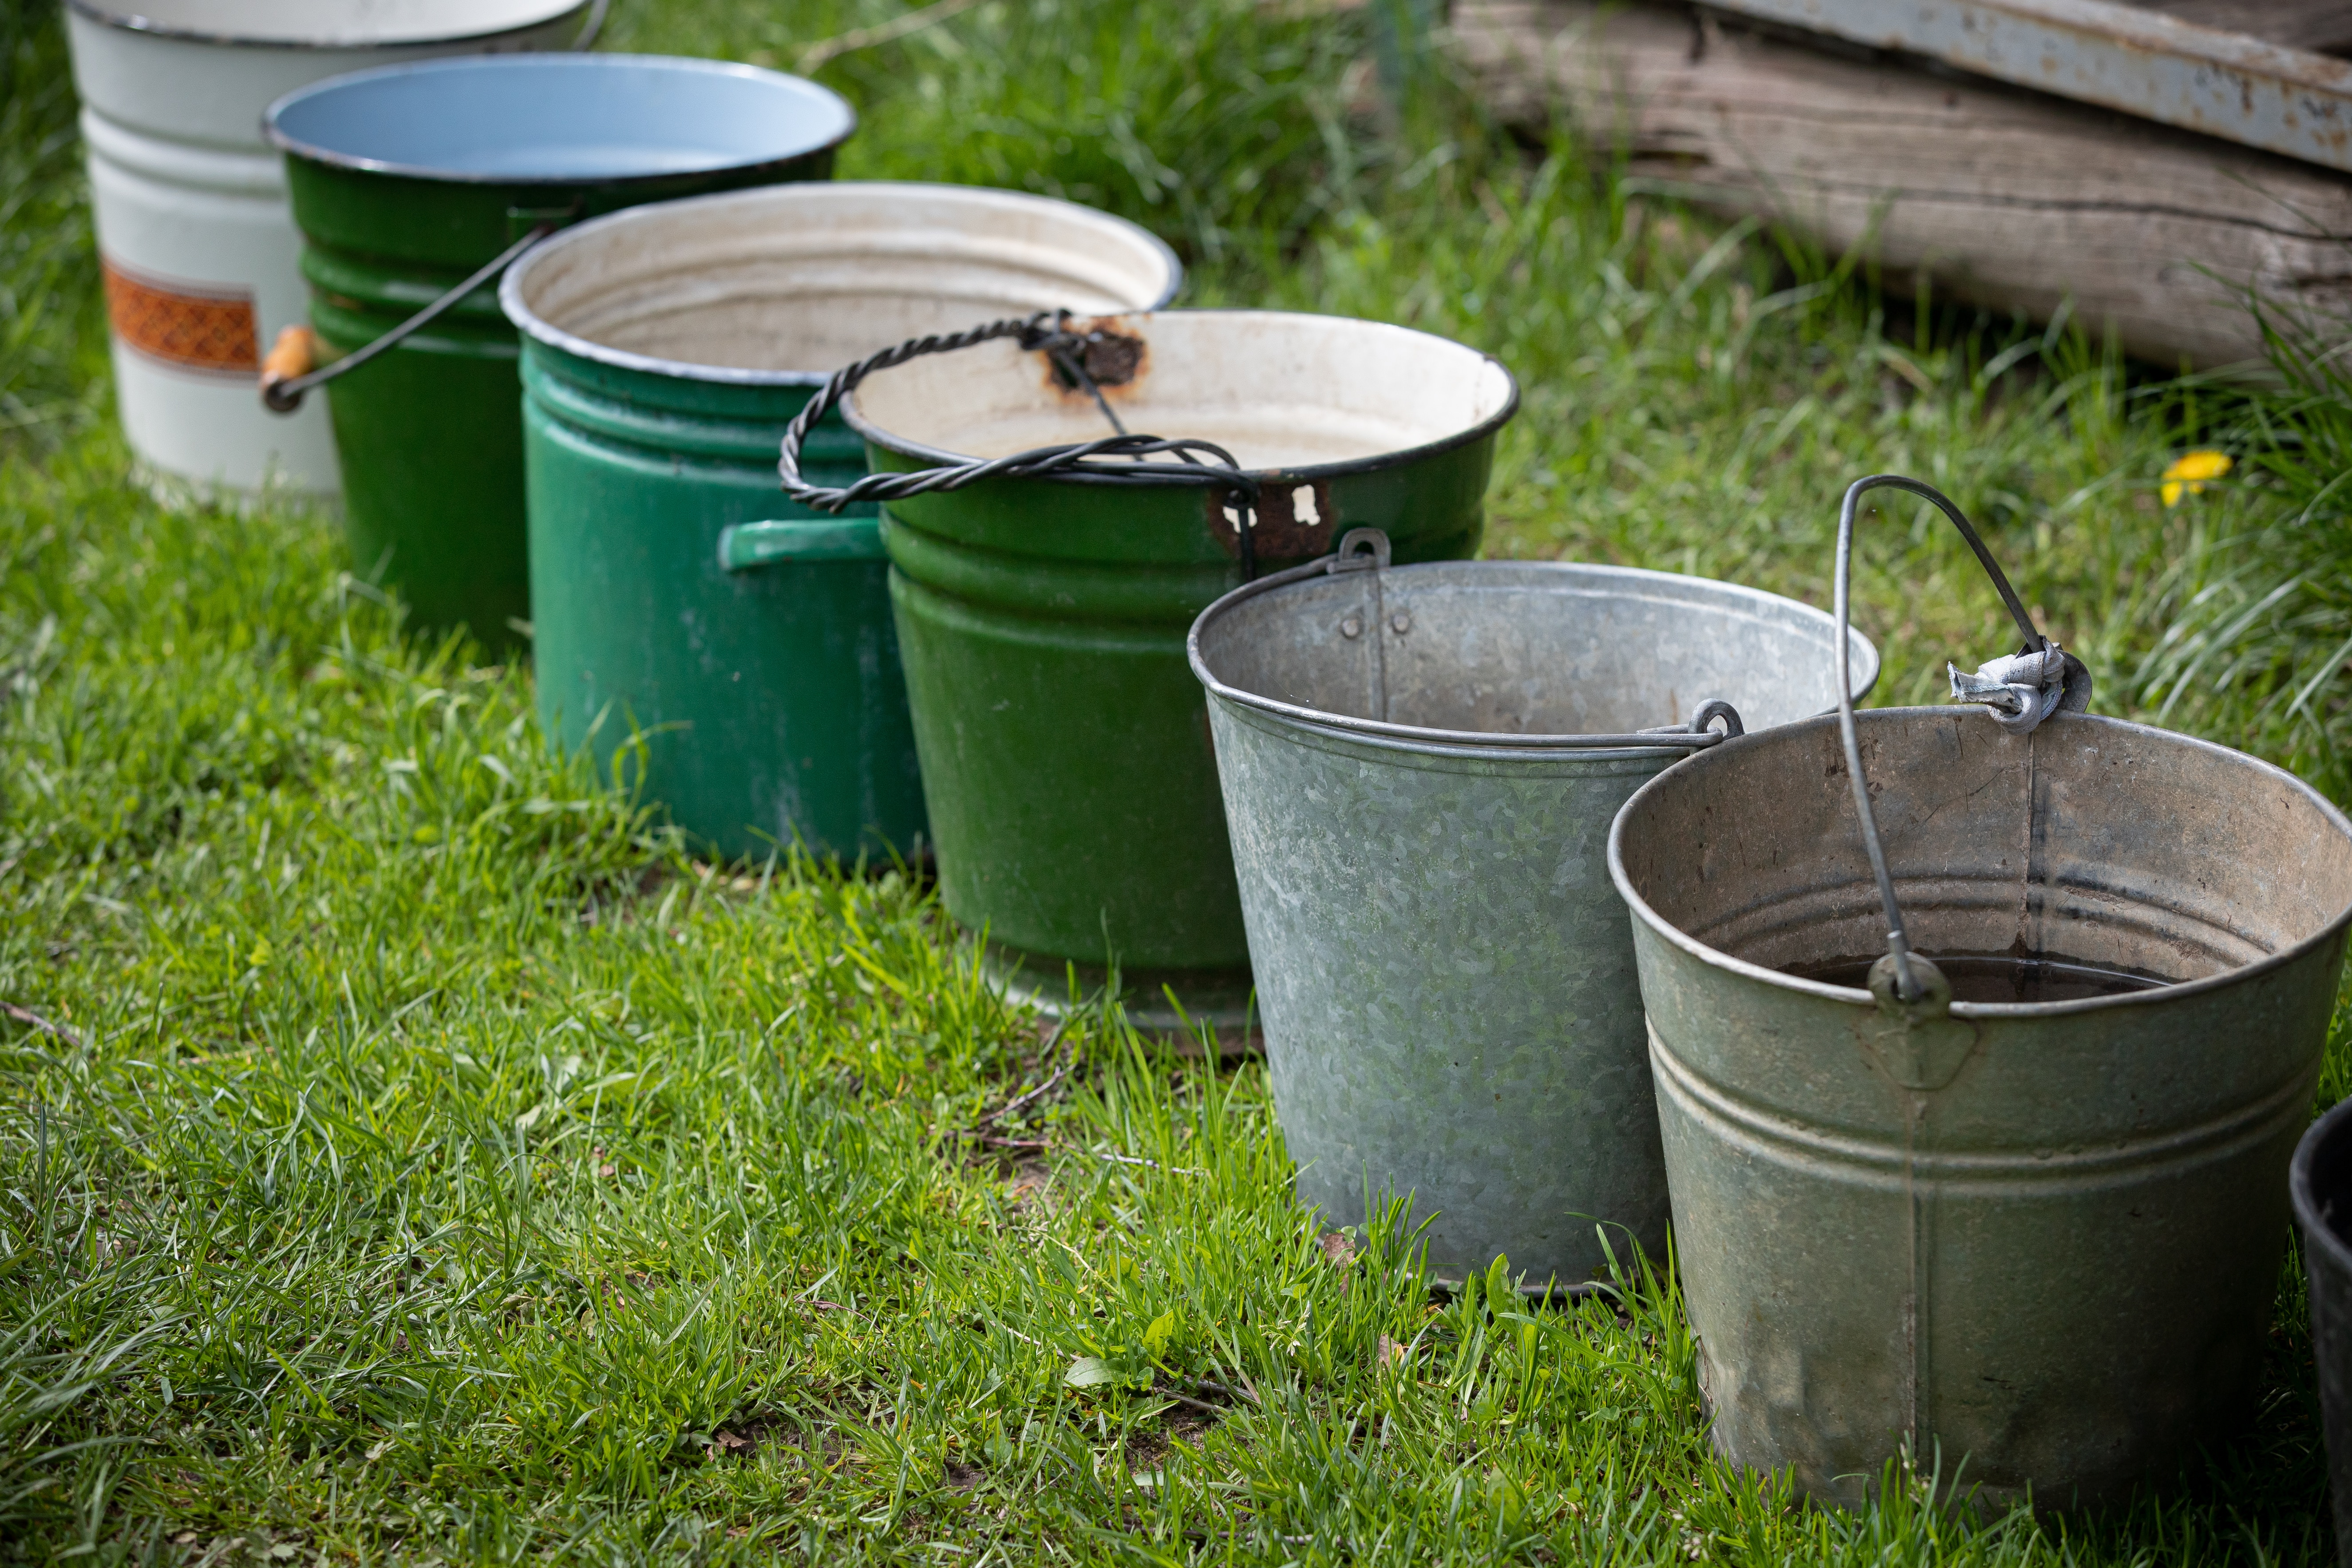 Many different buckets stand in a row to collect rainwater. Buckets of water stand on the grass in the garden next to the house. Village concept